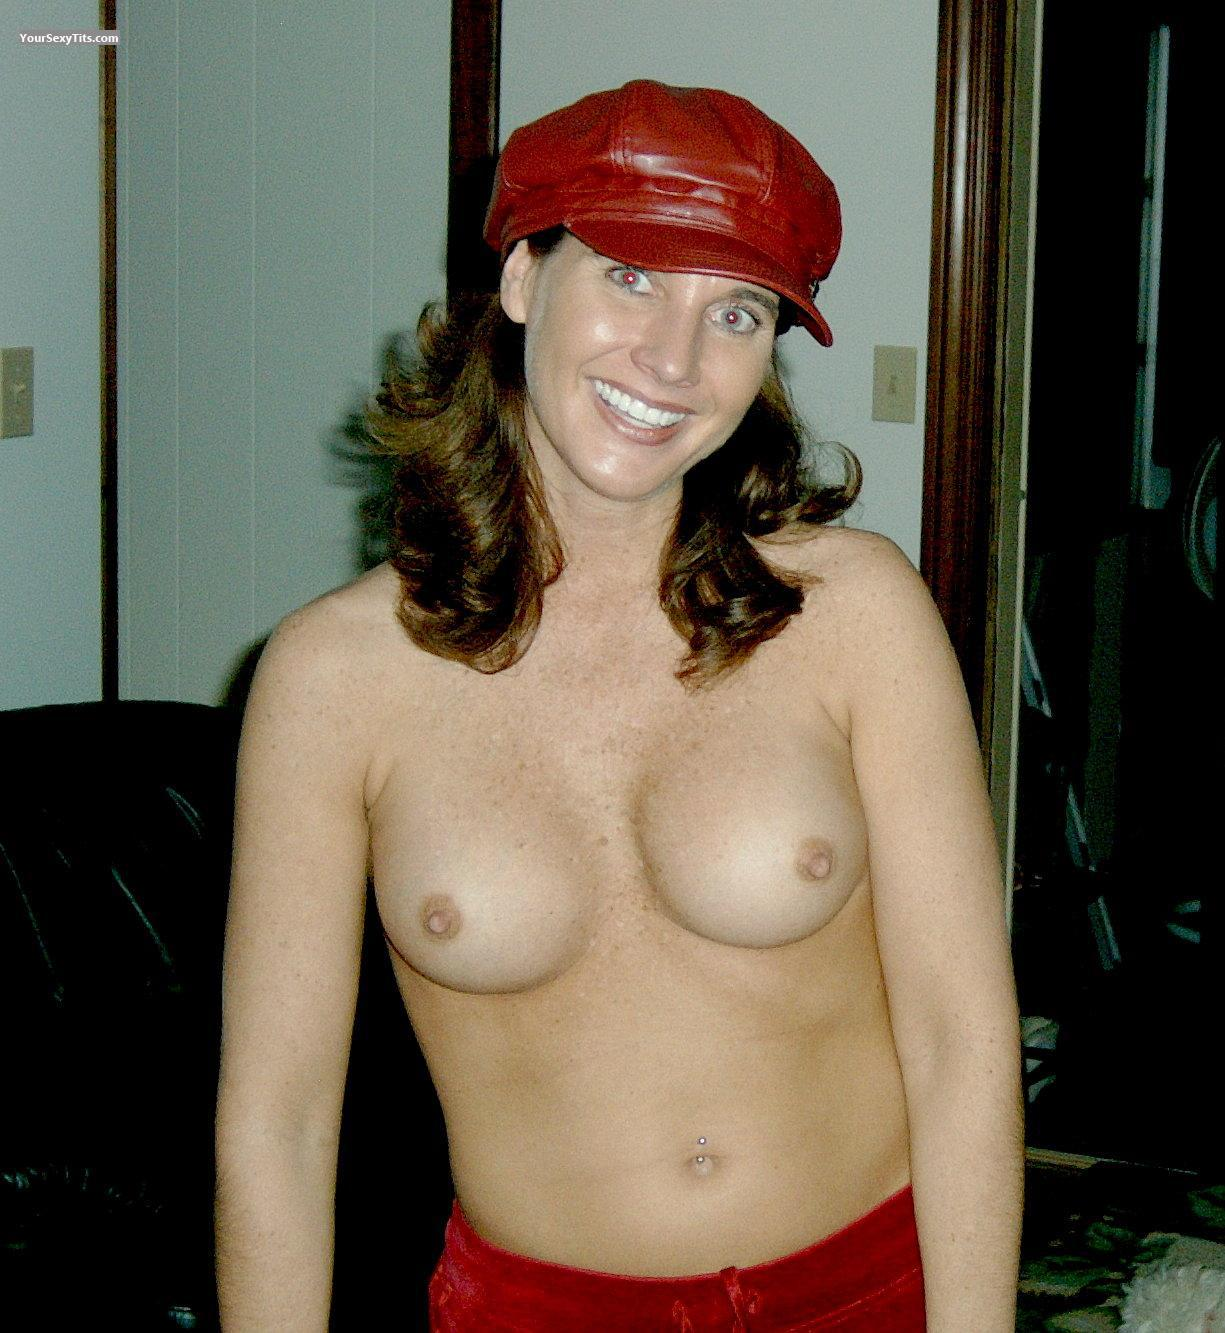 medium tits - topless flirt from united states tit flash id 7126